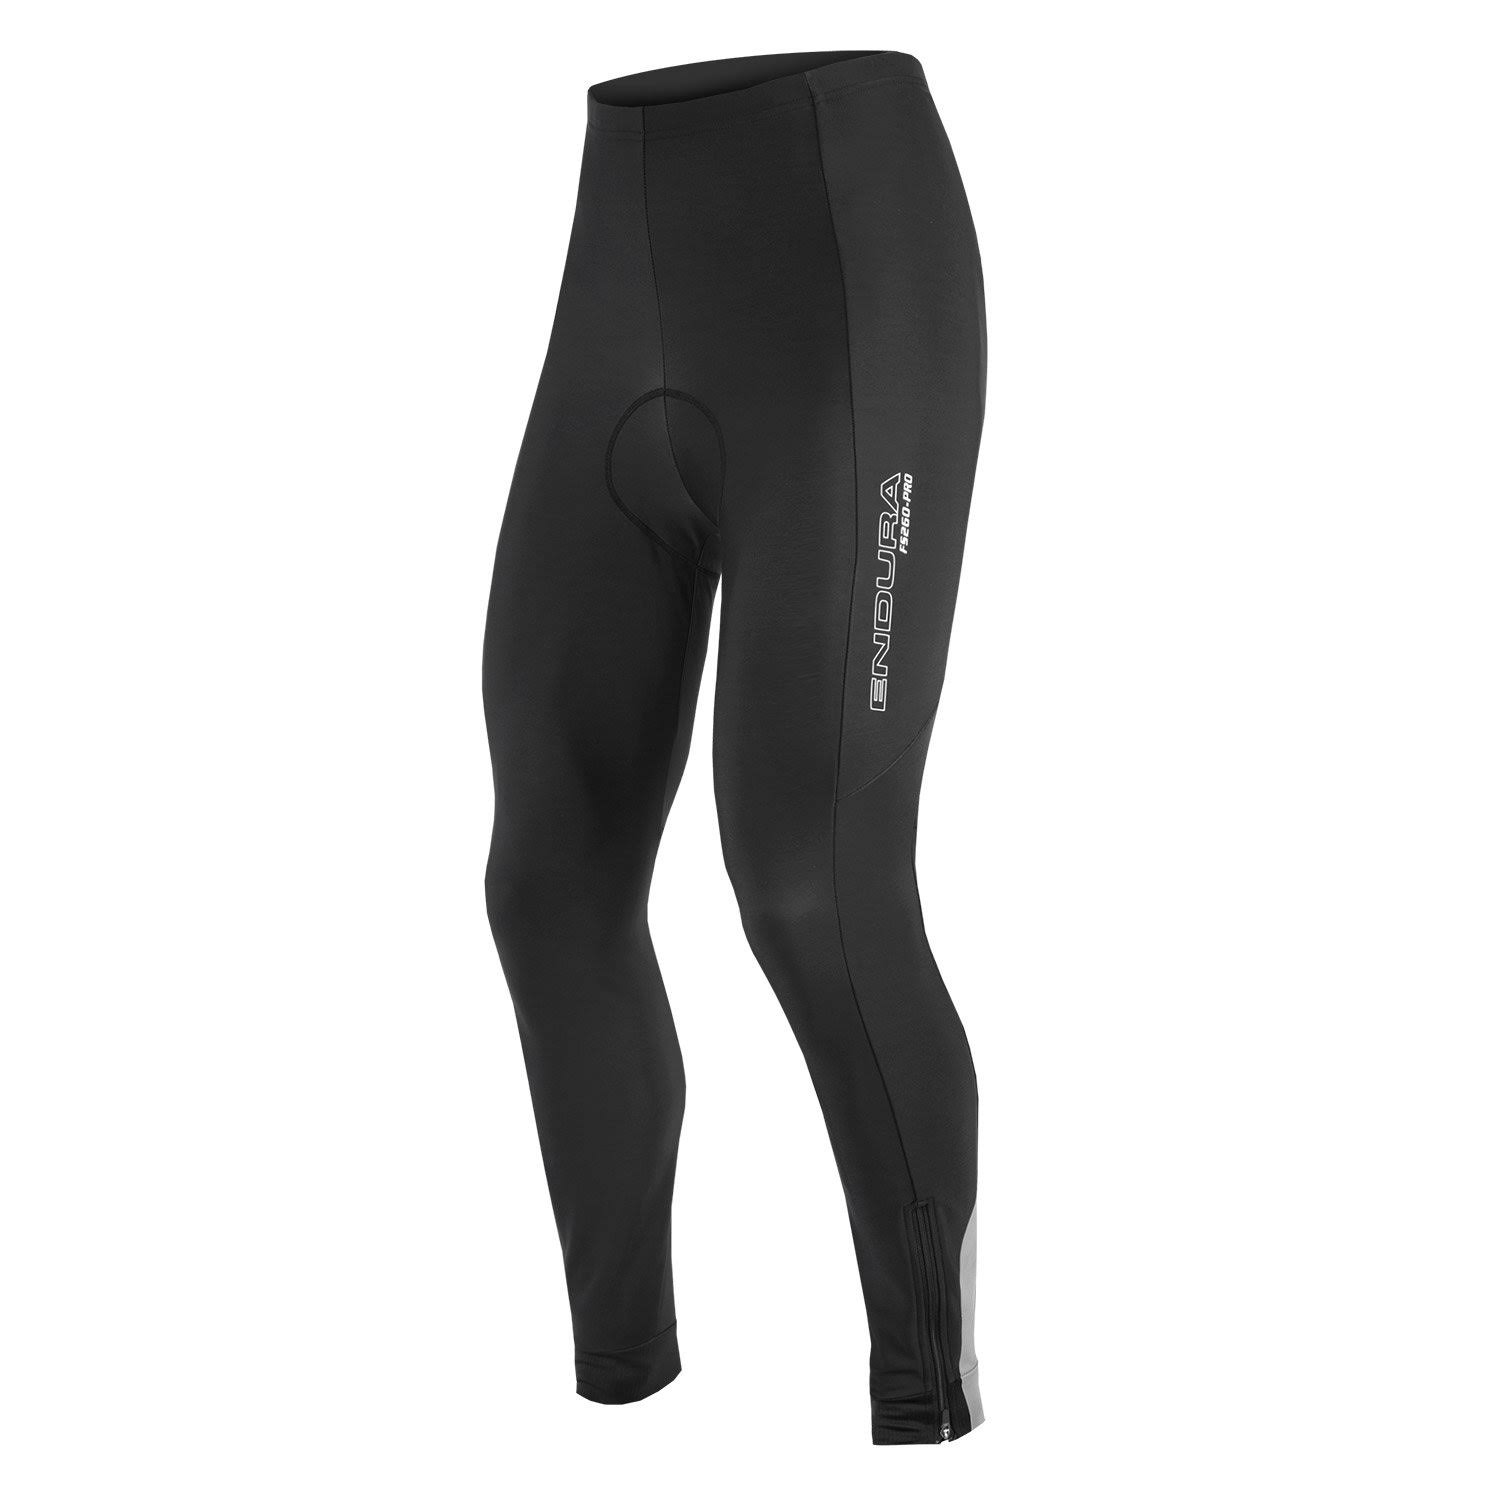 Endura Men's Pro Thermo Tights Road Bike Pants - Black, Large